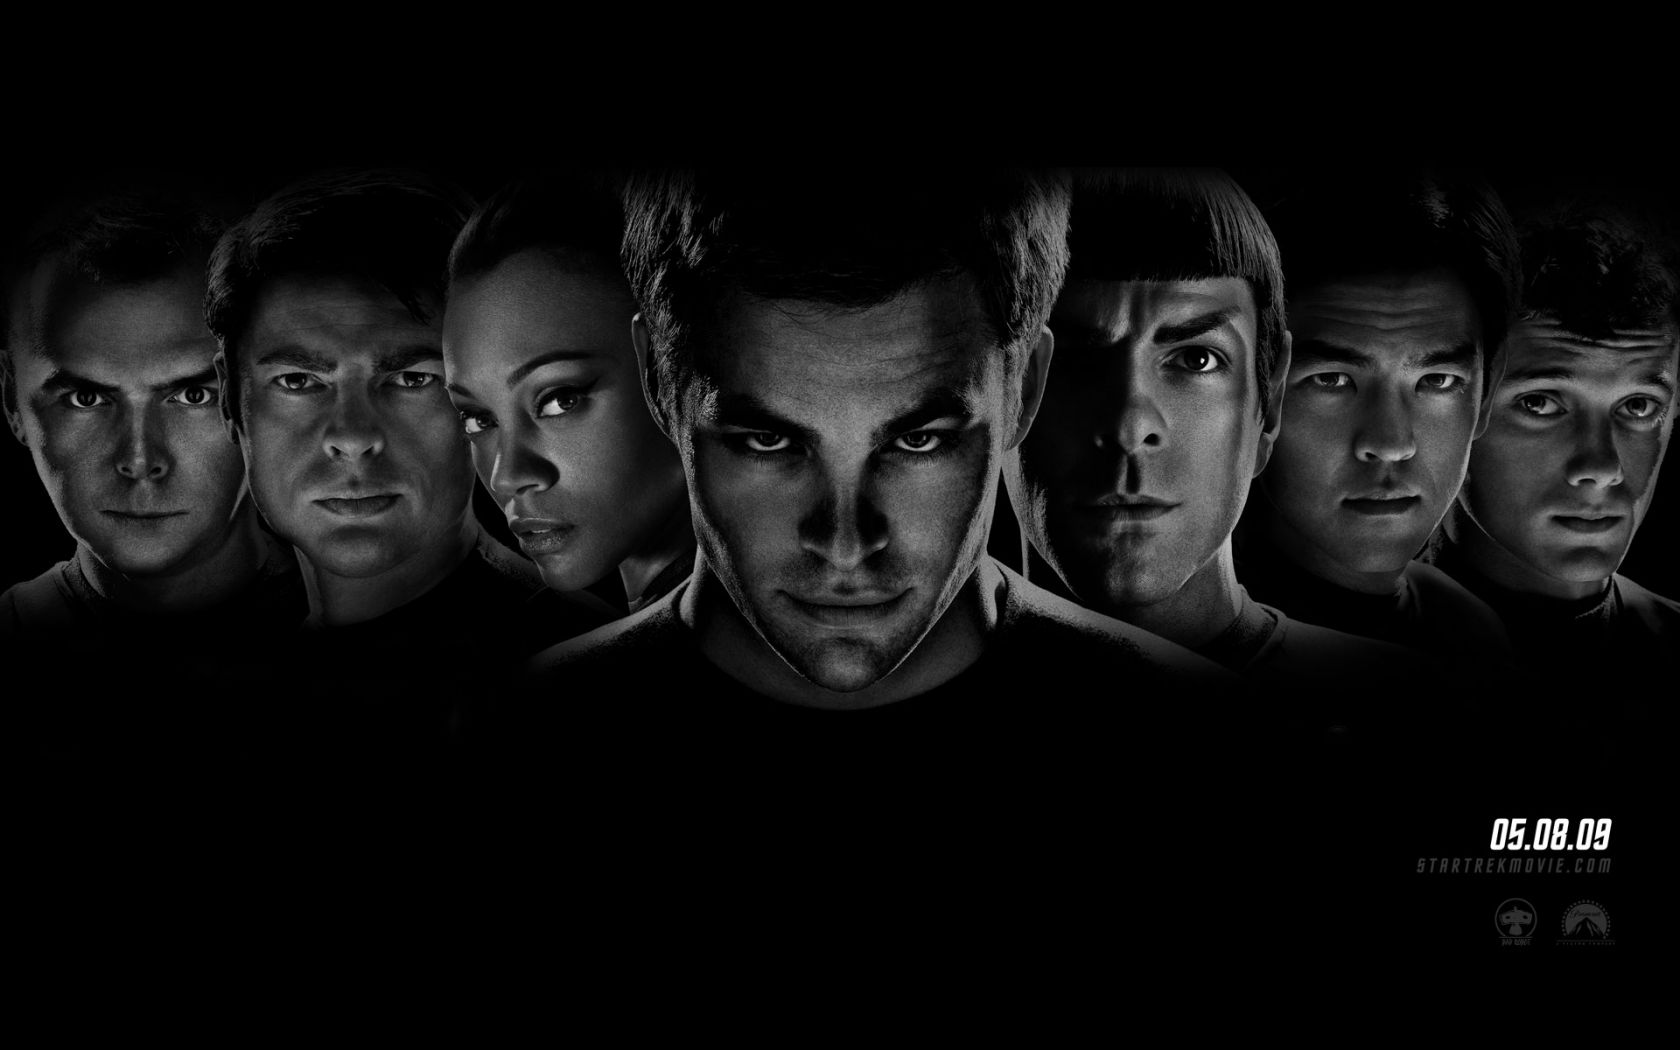 Star Trek 2009 Faces Wallpaper 1680x1050